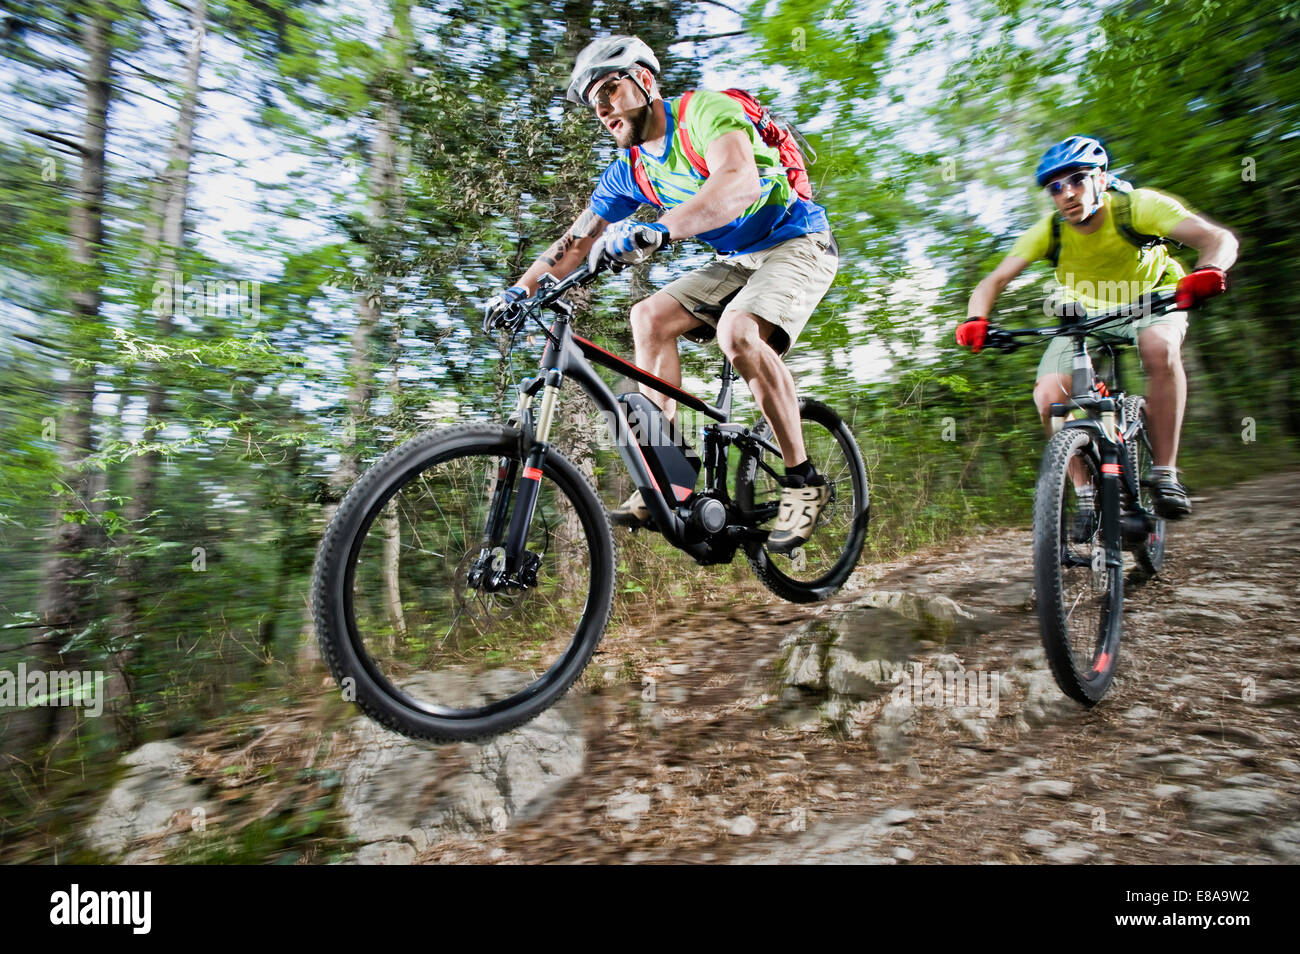 Two Mountainbikers stunt racing forest track - Stock Image